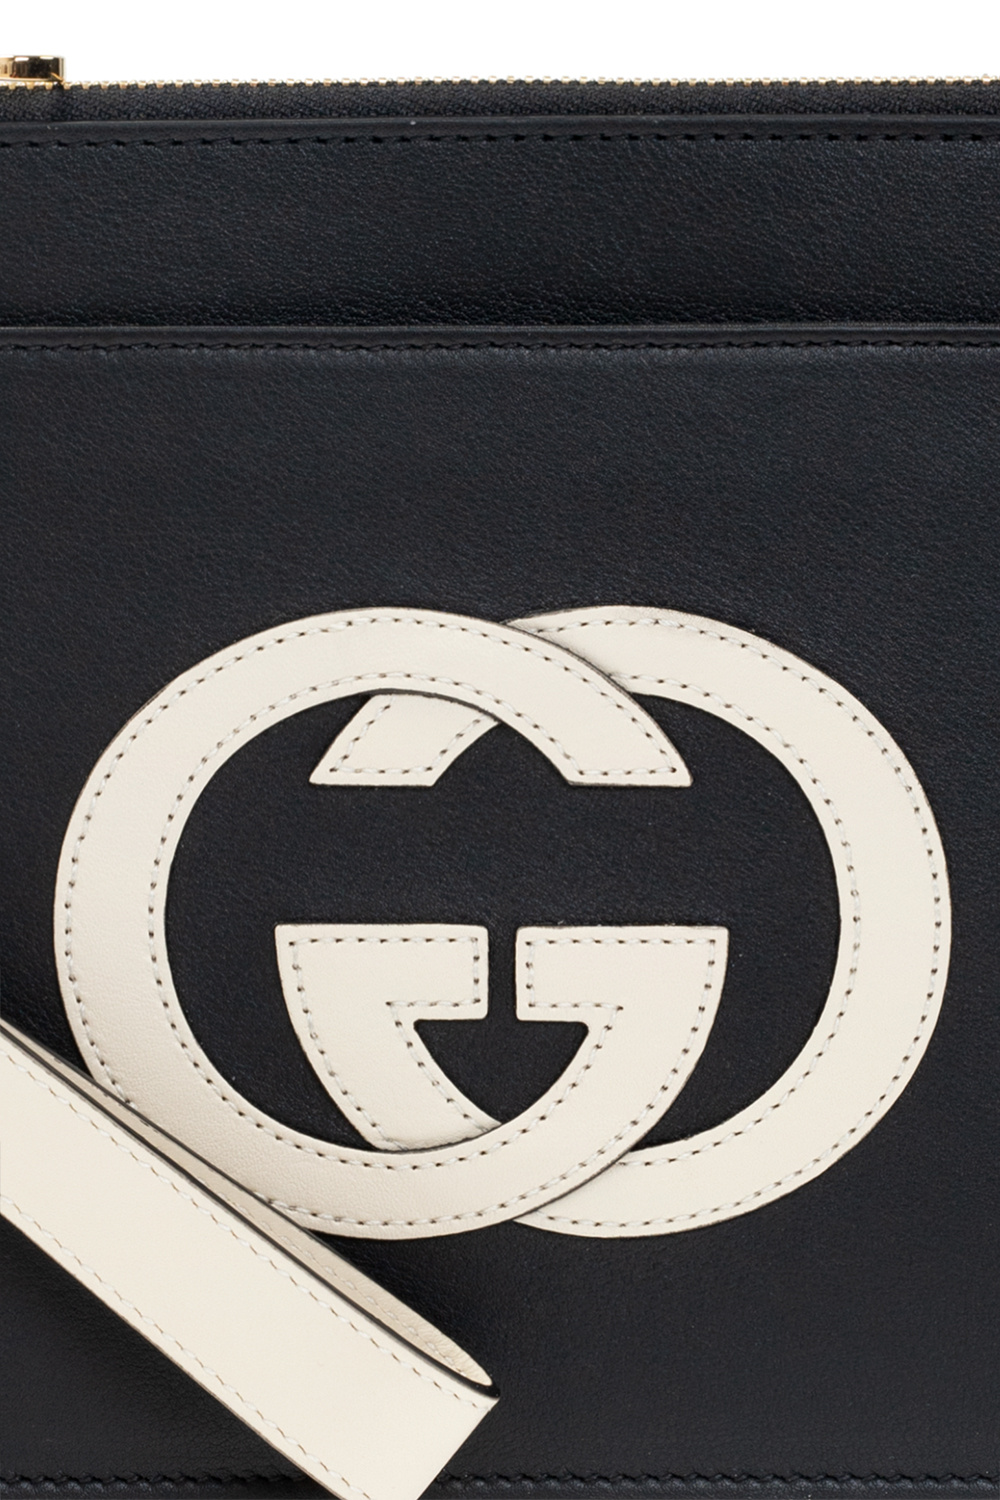 Gucci Hand bag with logo